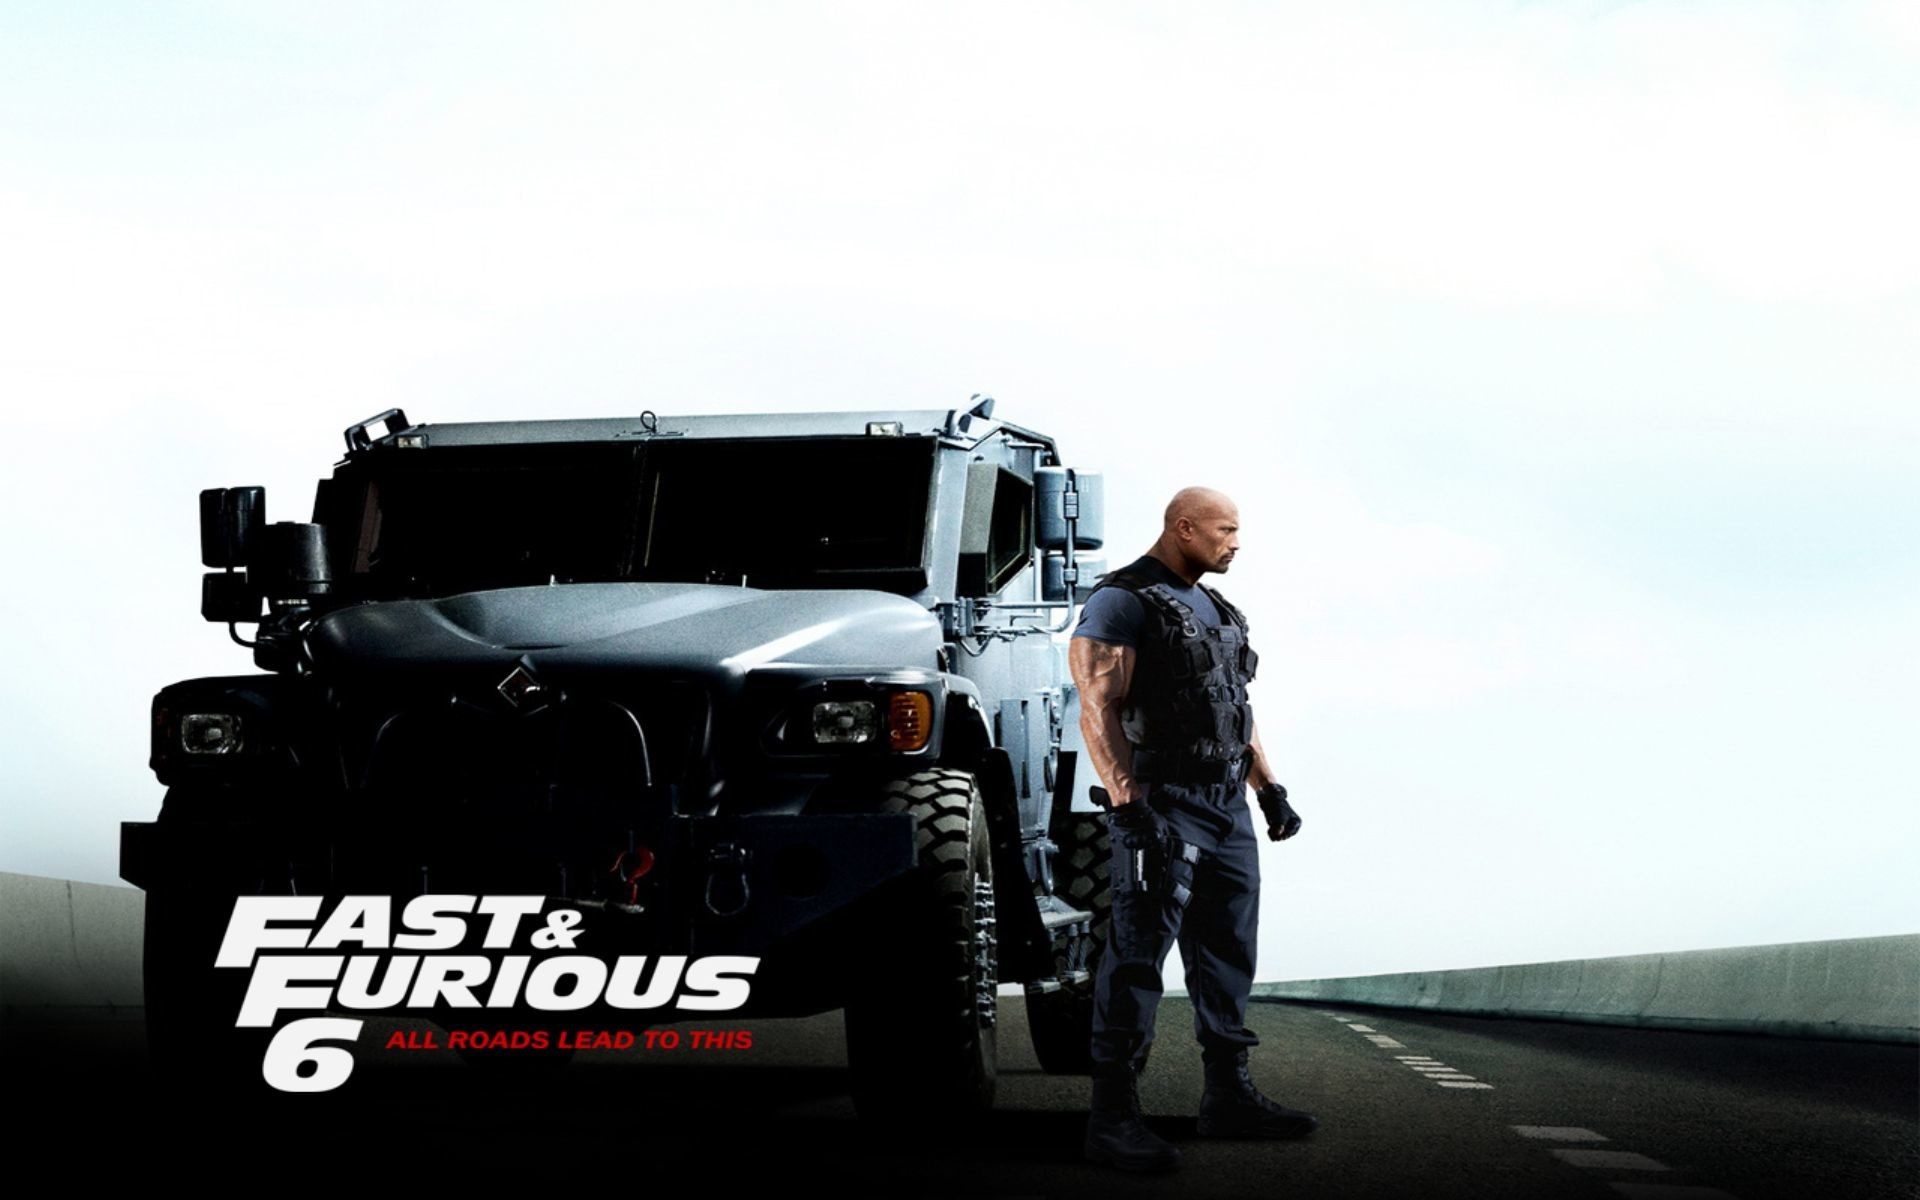 Fast and furious wallpaper Group | HD Wallpapers | Pinterest | 3d wallpaper,  Wallpaper and Hd wallpaper